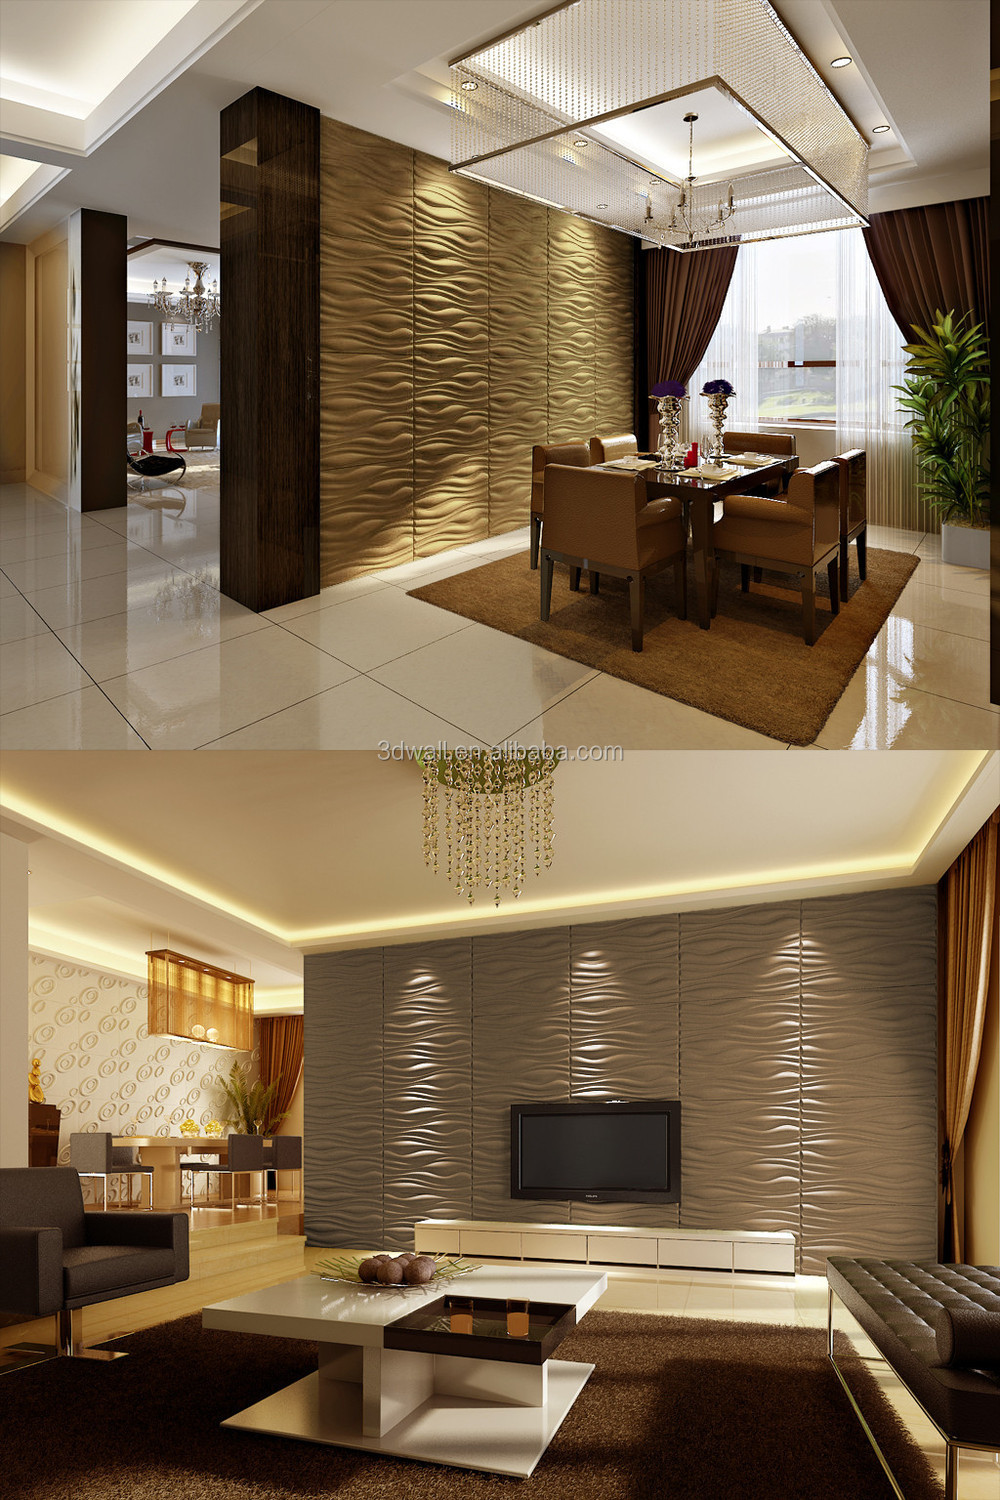 3d wall fibre decor wall coating